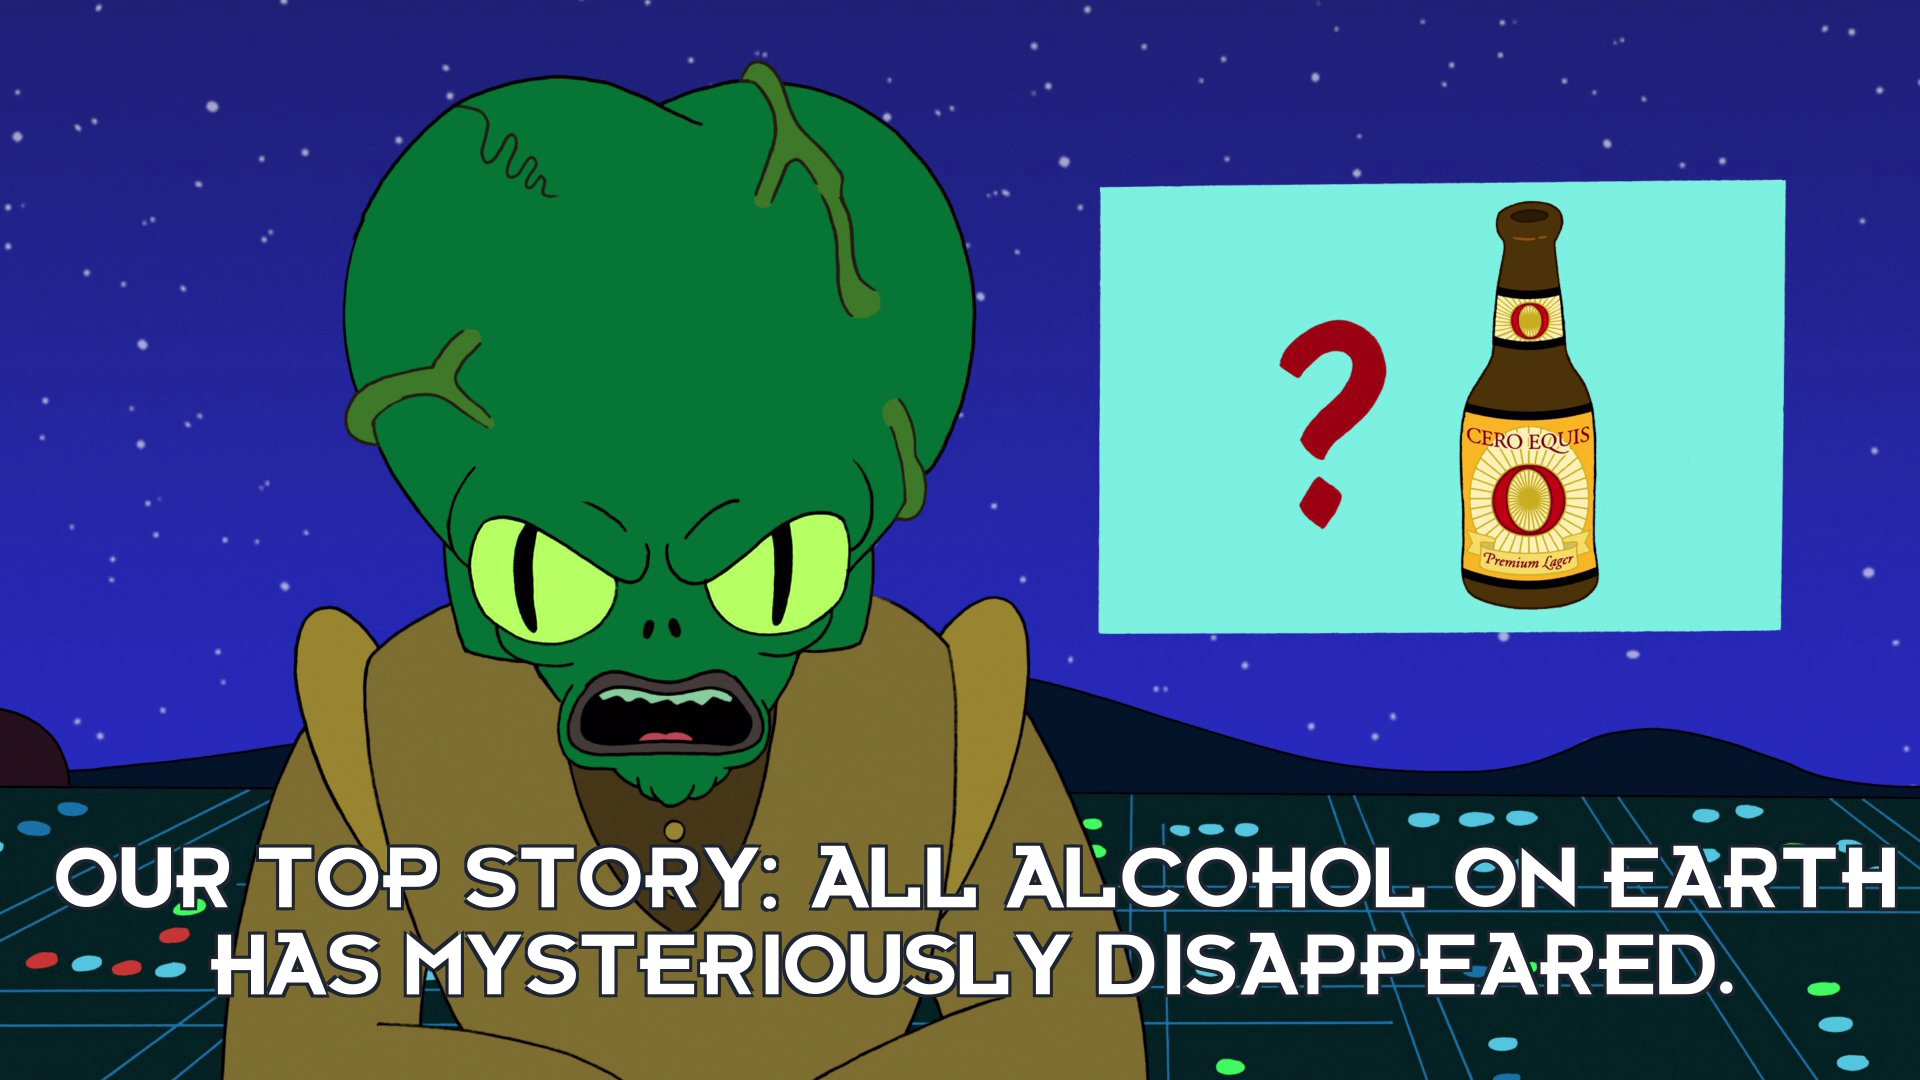 Morbo: Our top story: All alcohol on Earth has mysteriously disappeared.